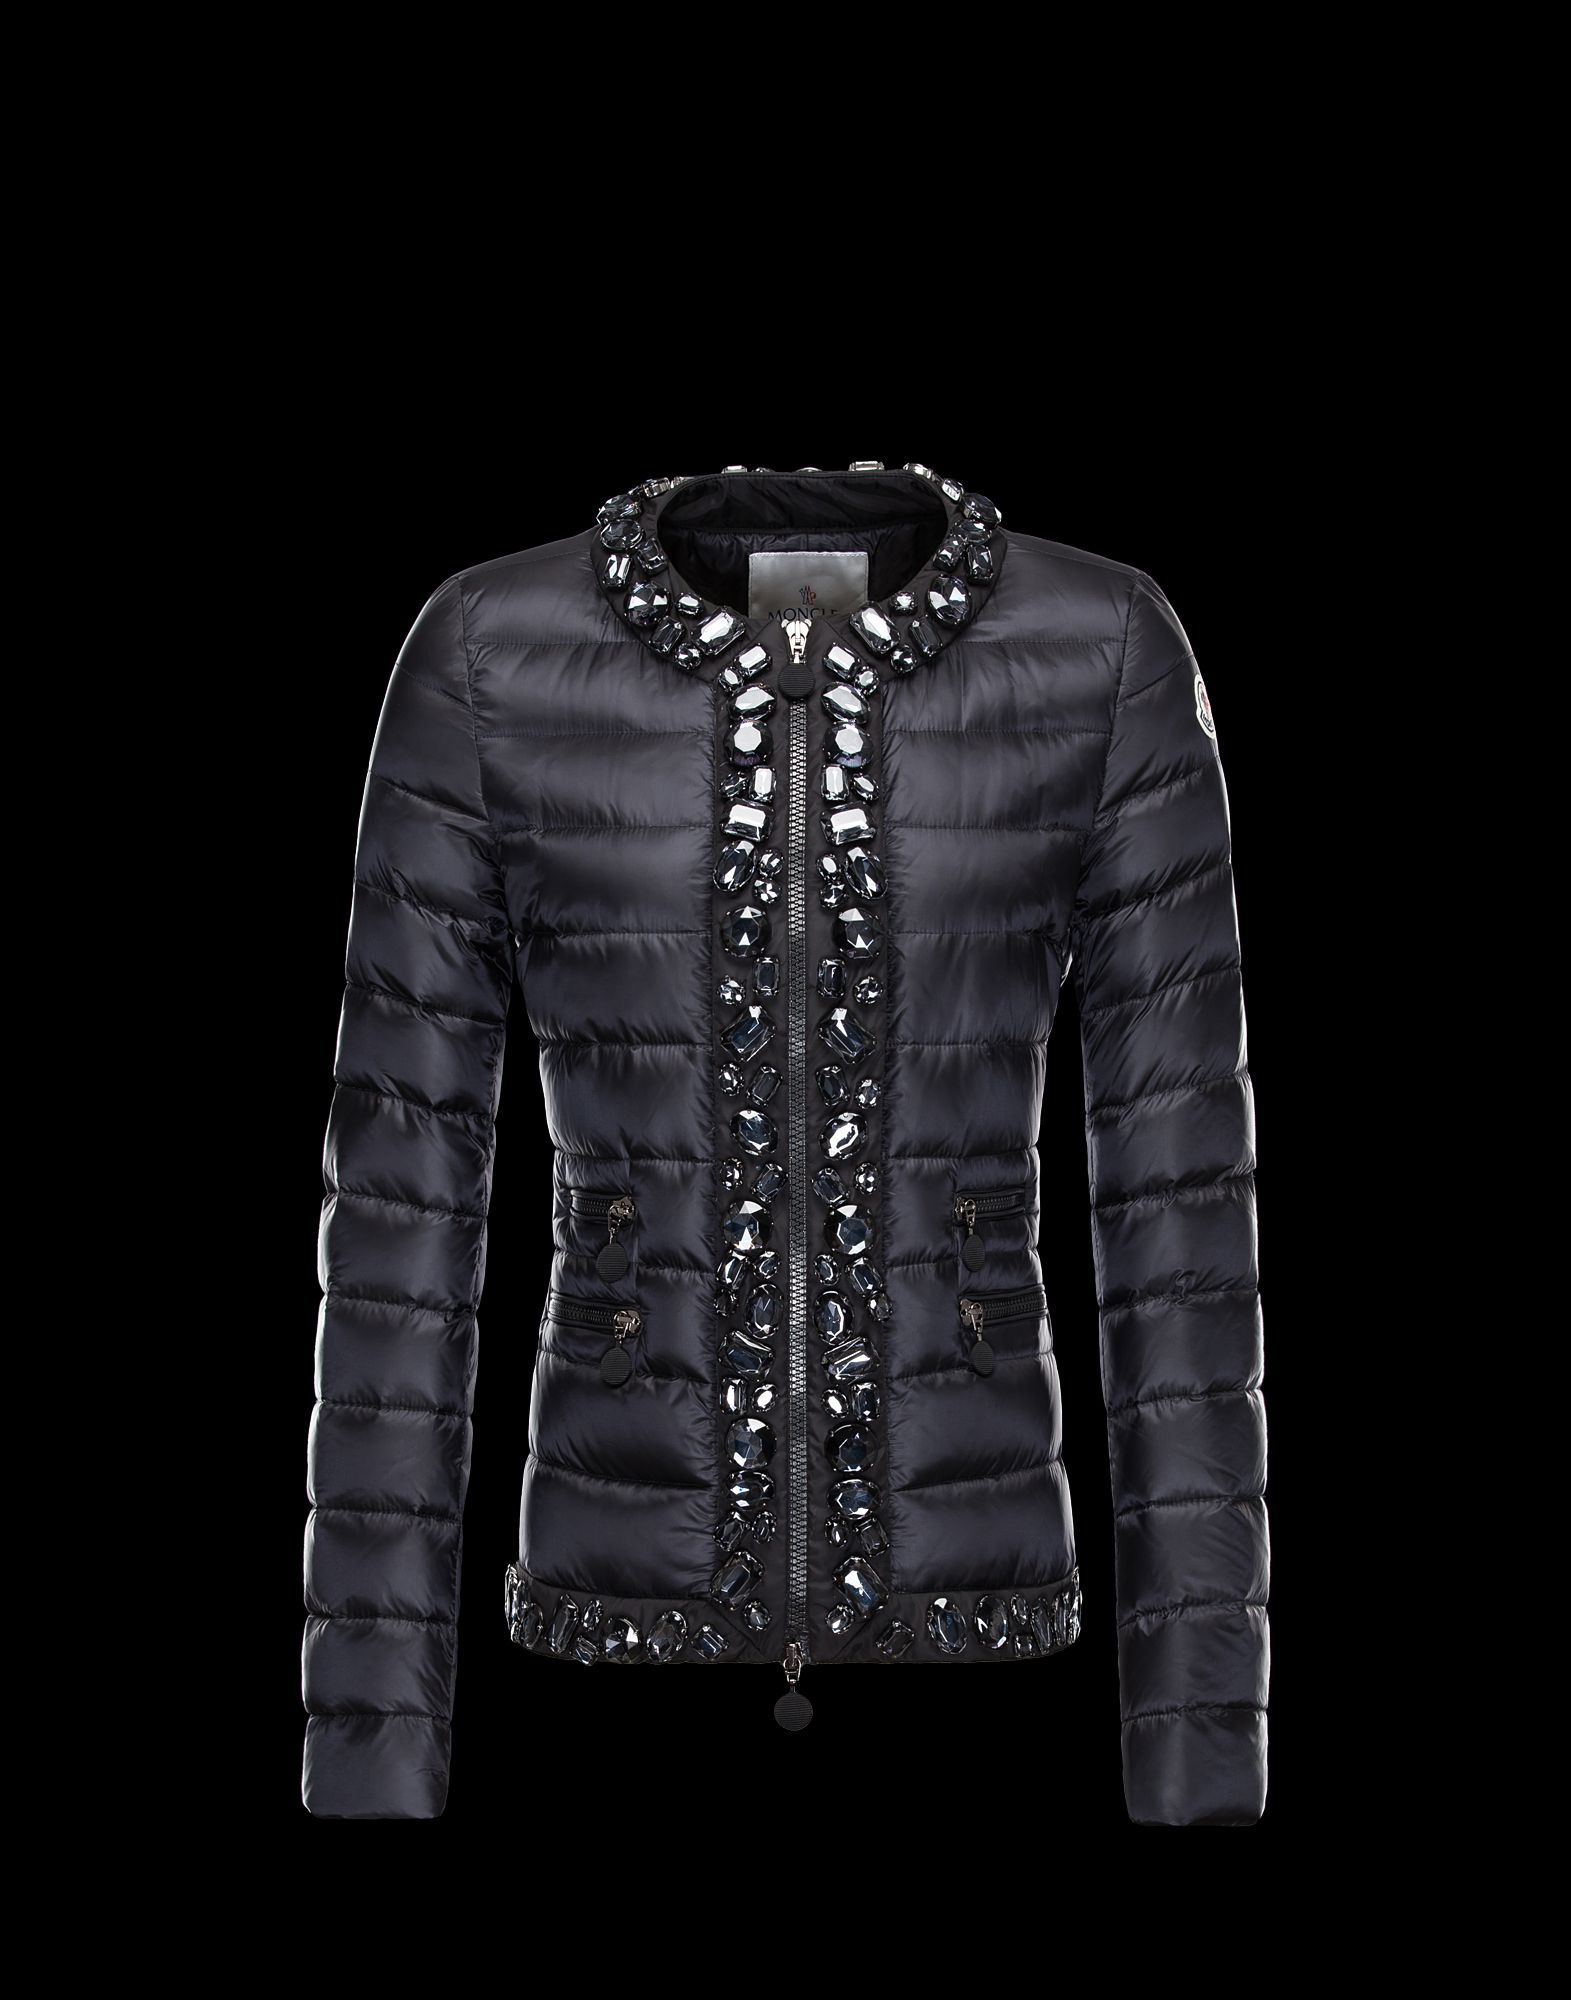 Moncler. Oh. My. Goodness. Let it be winter forever as